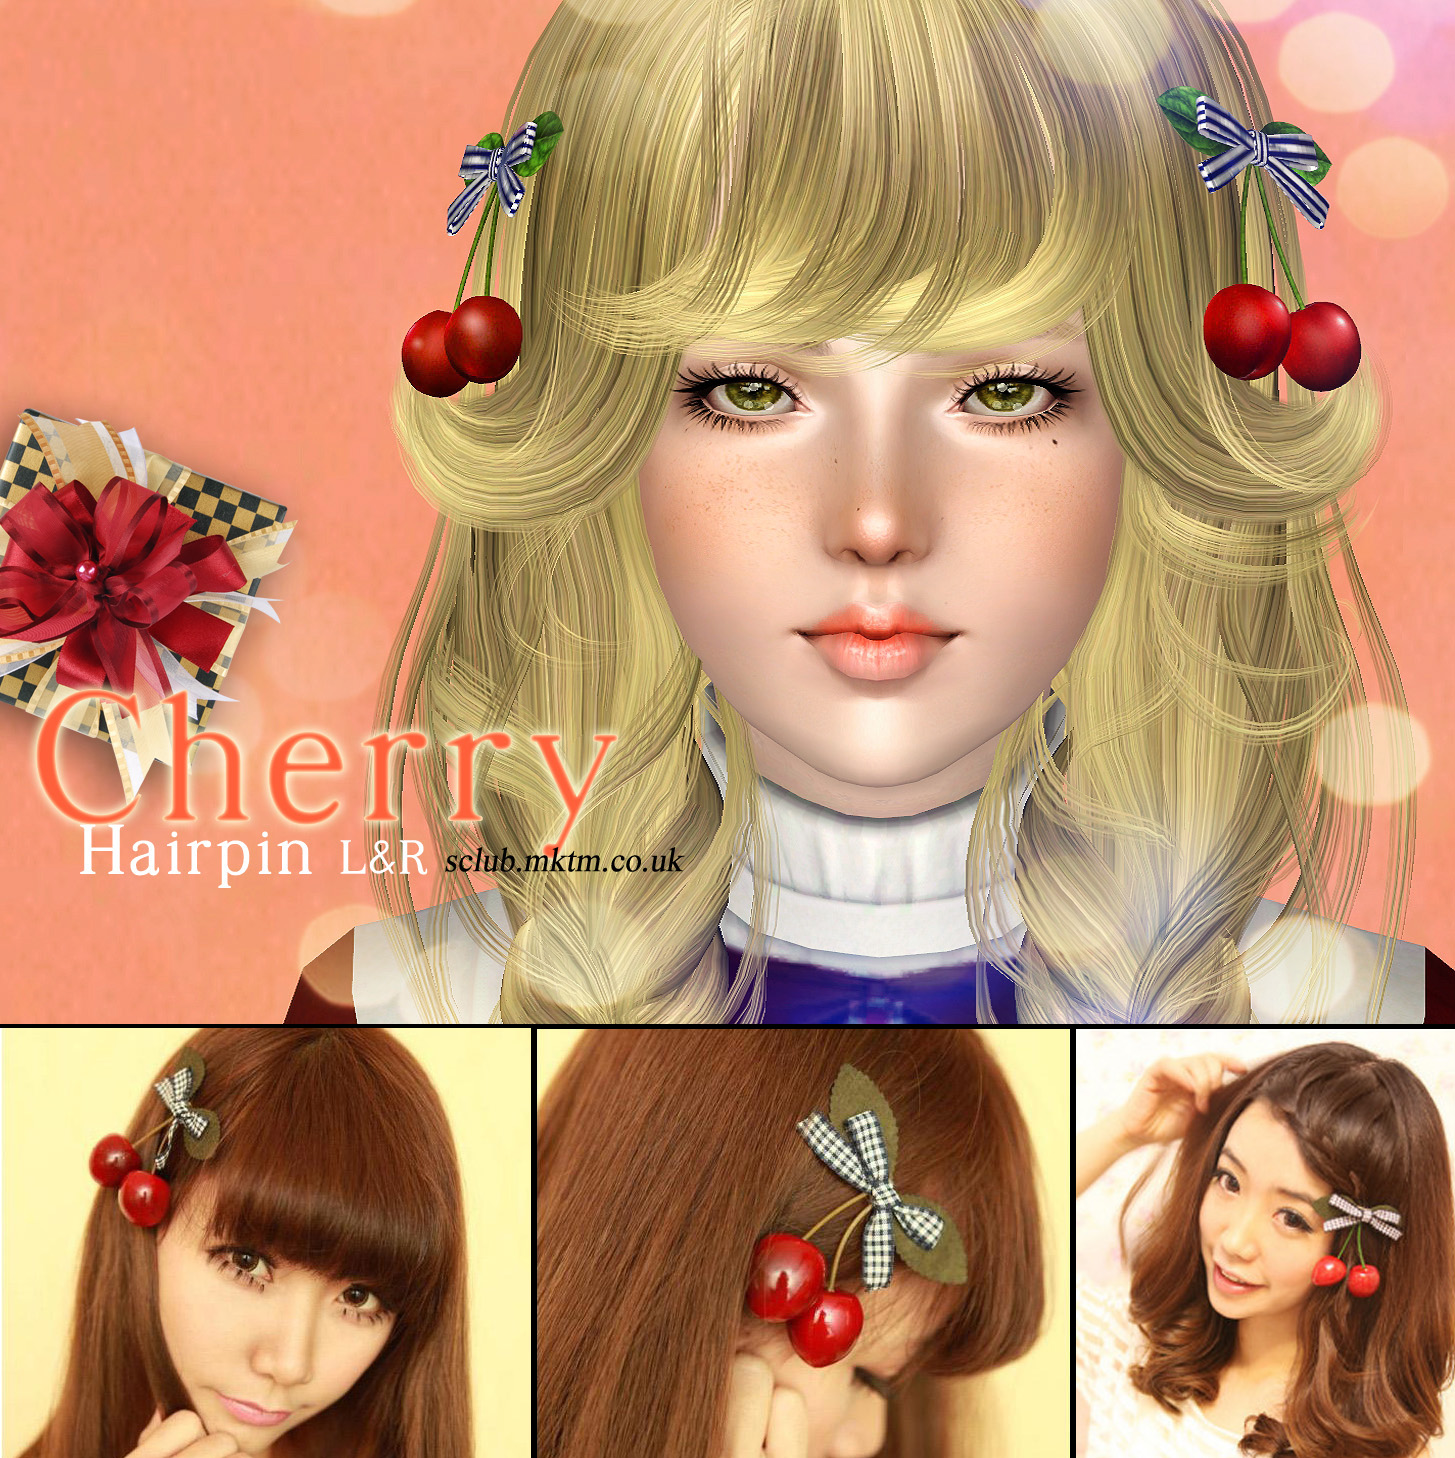 S-Club cherry hairpin R&L